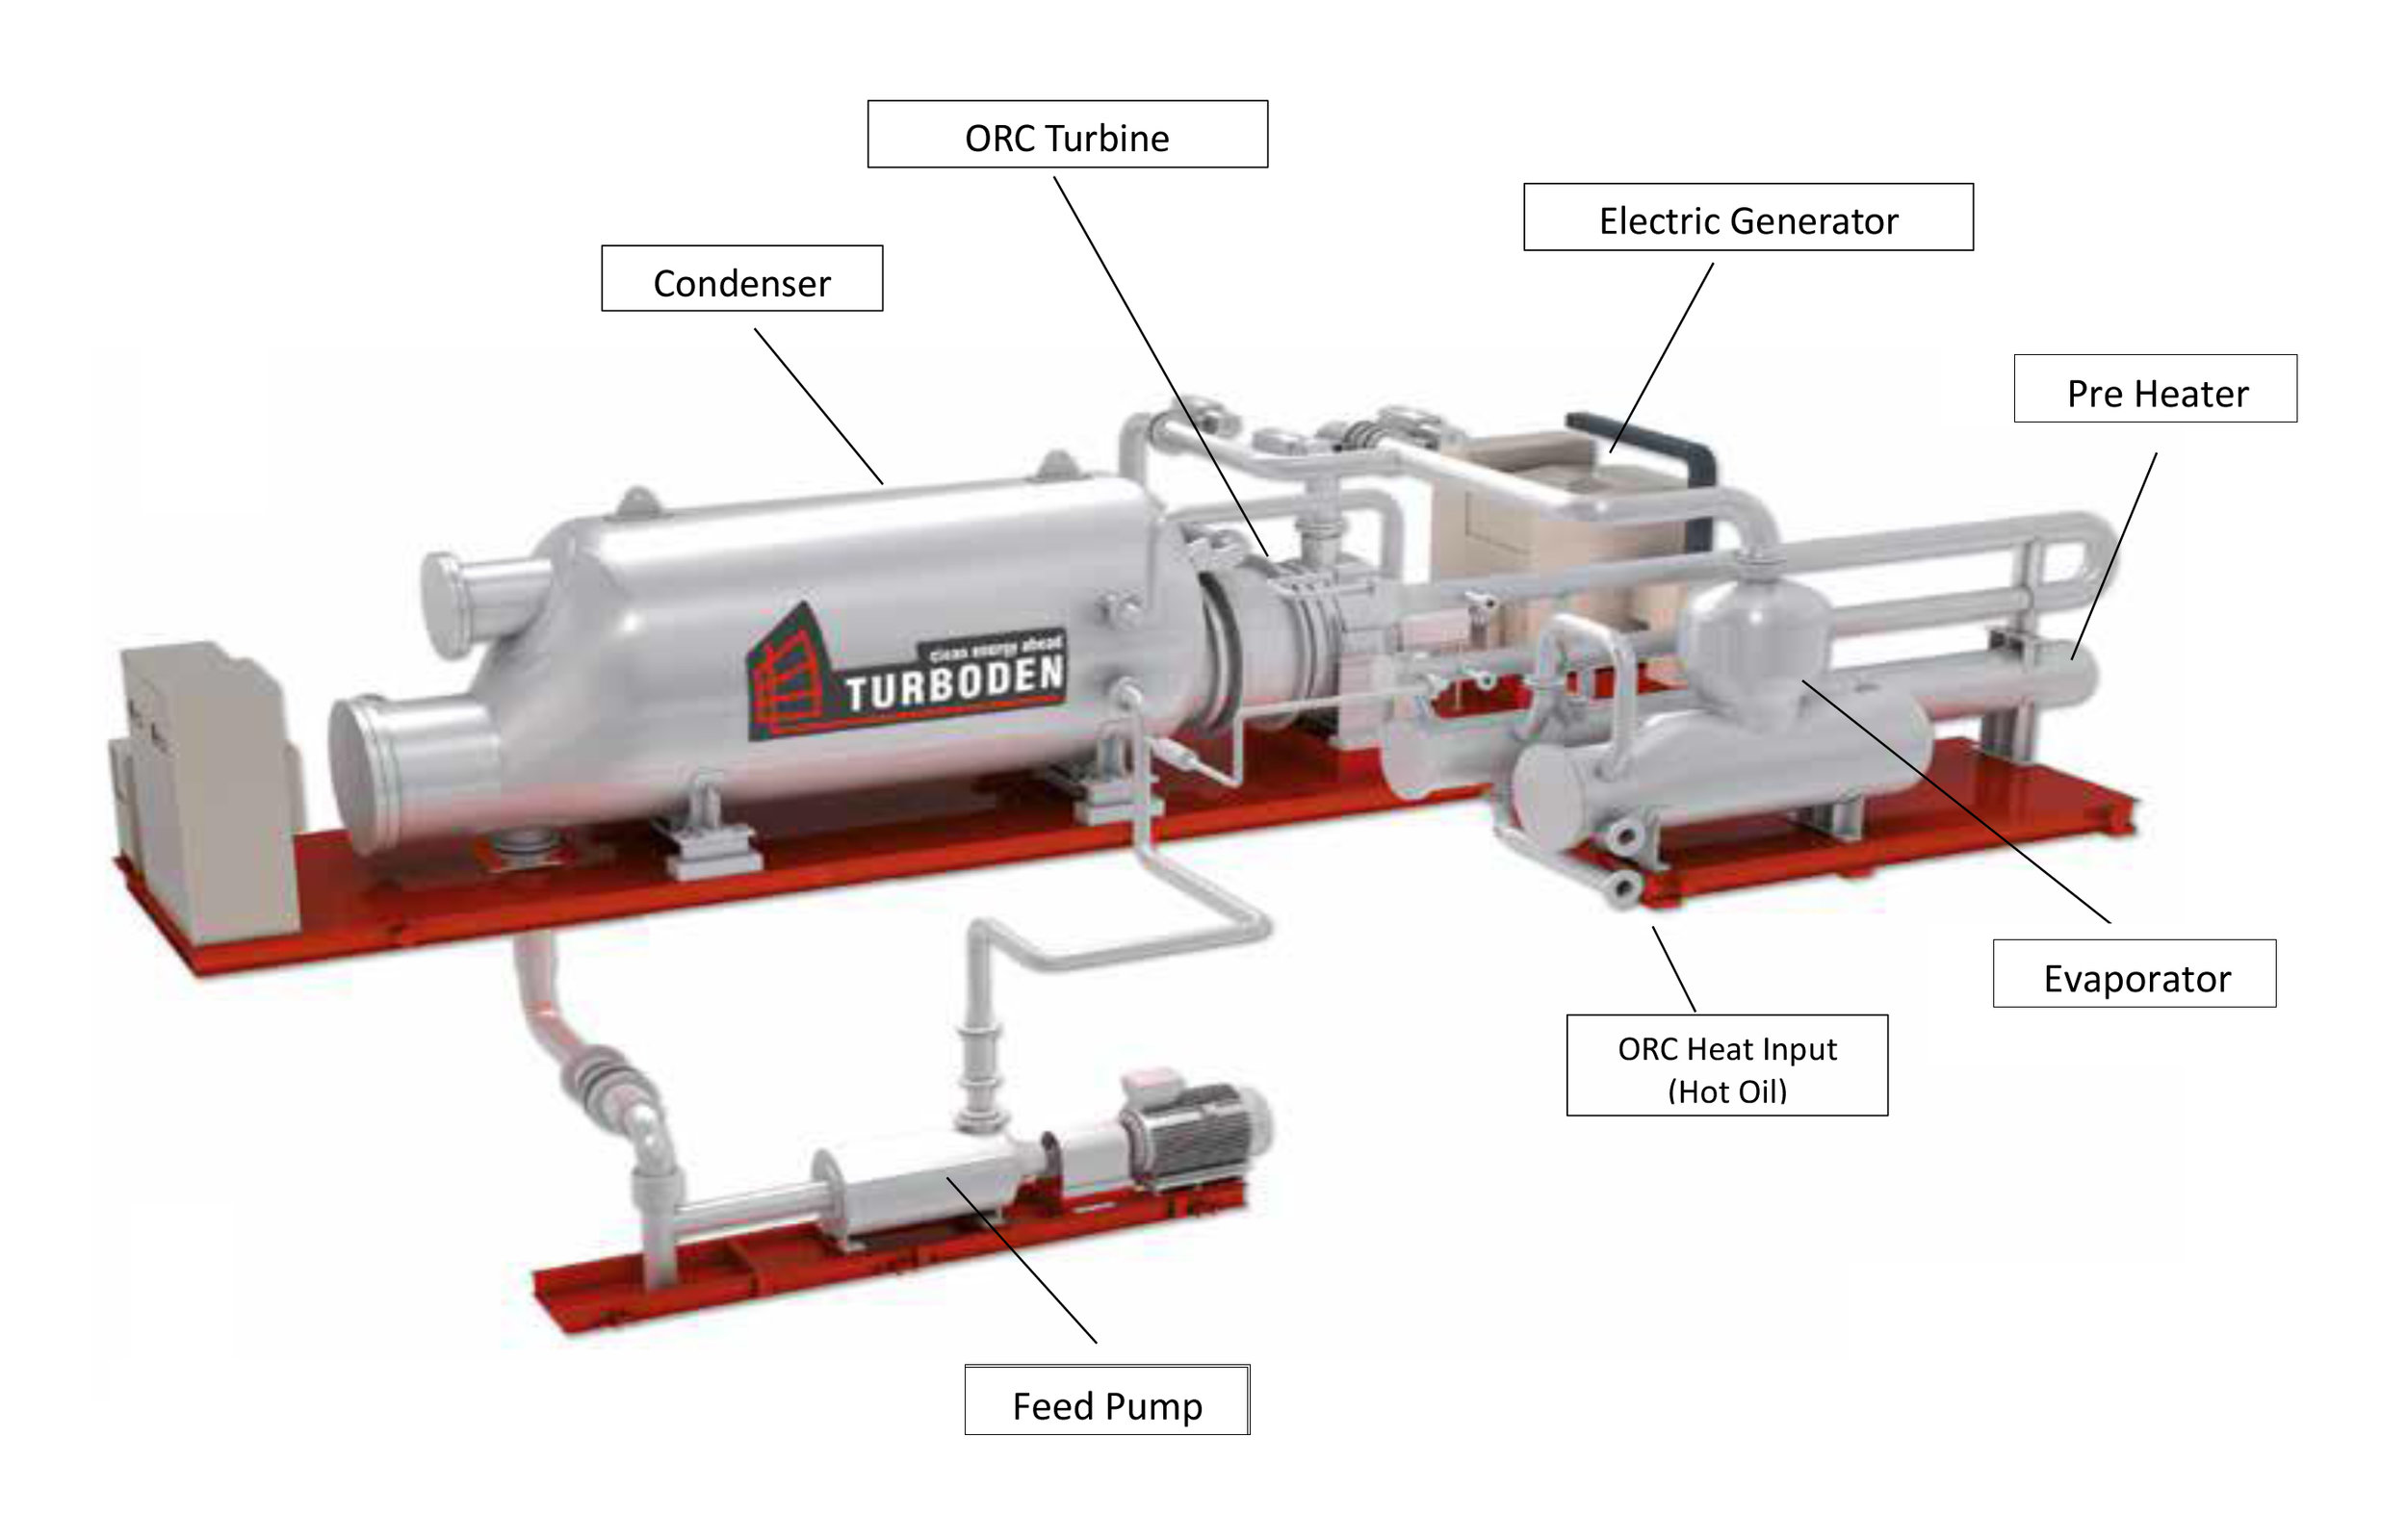 Turboden Organic Rankin Cycle Configuaration: (Picture courtesy of Turboden )